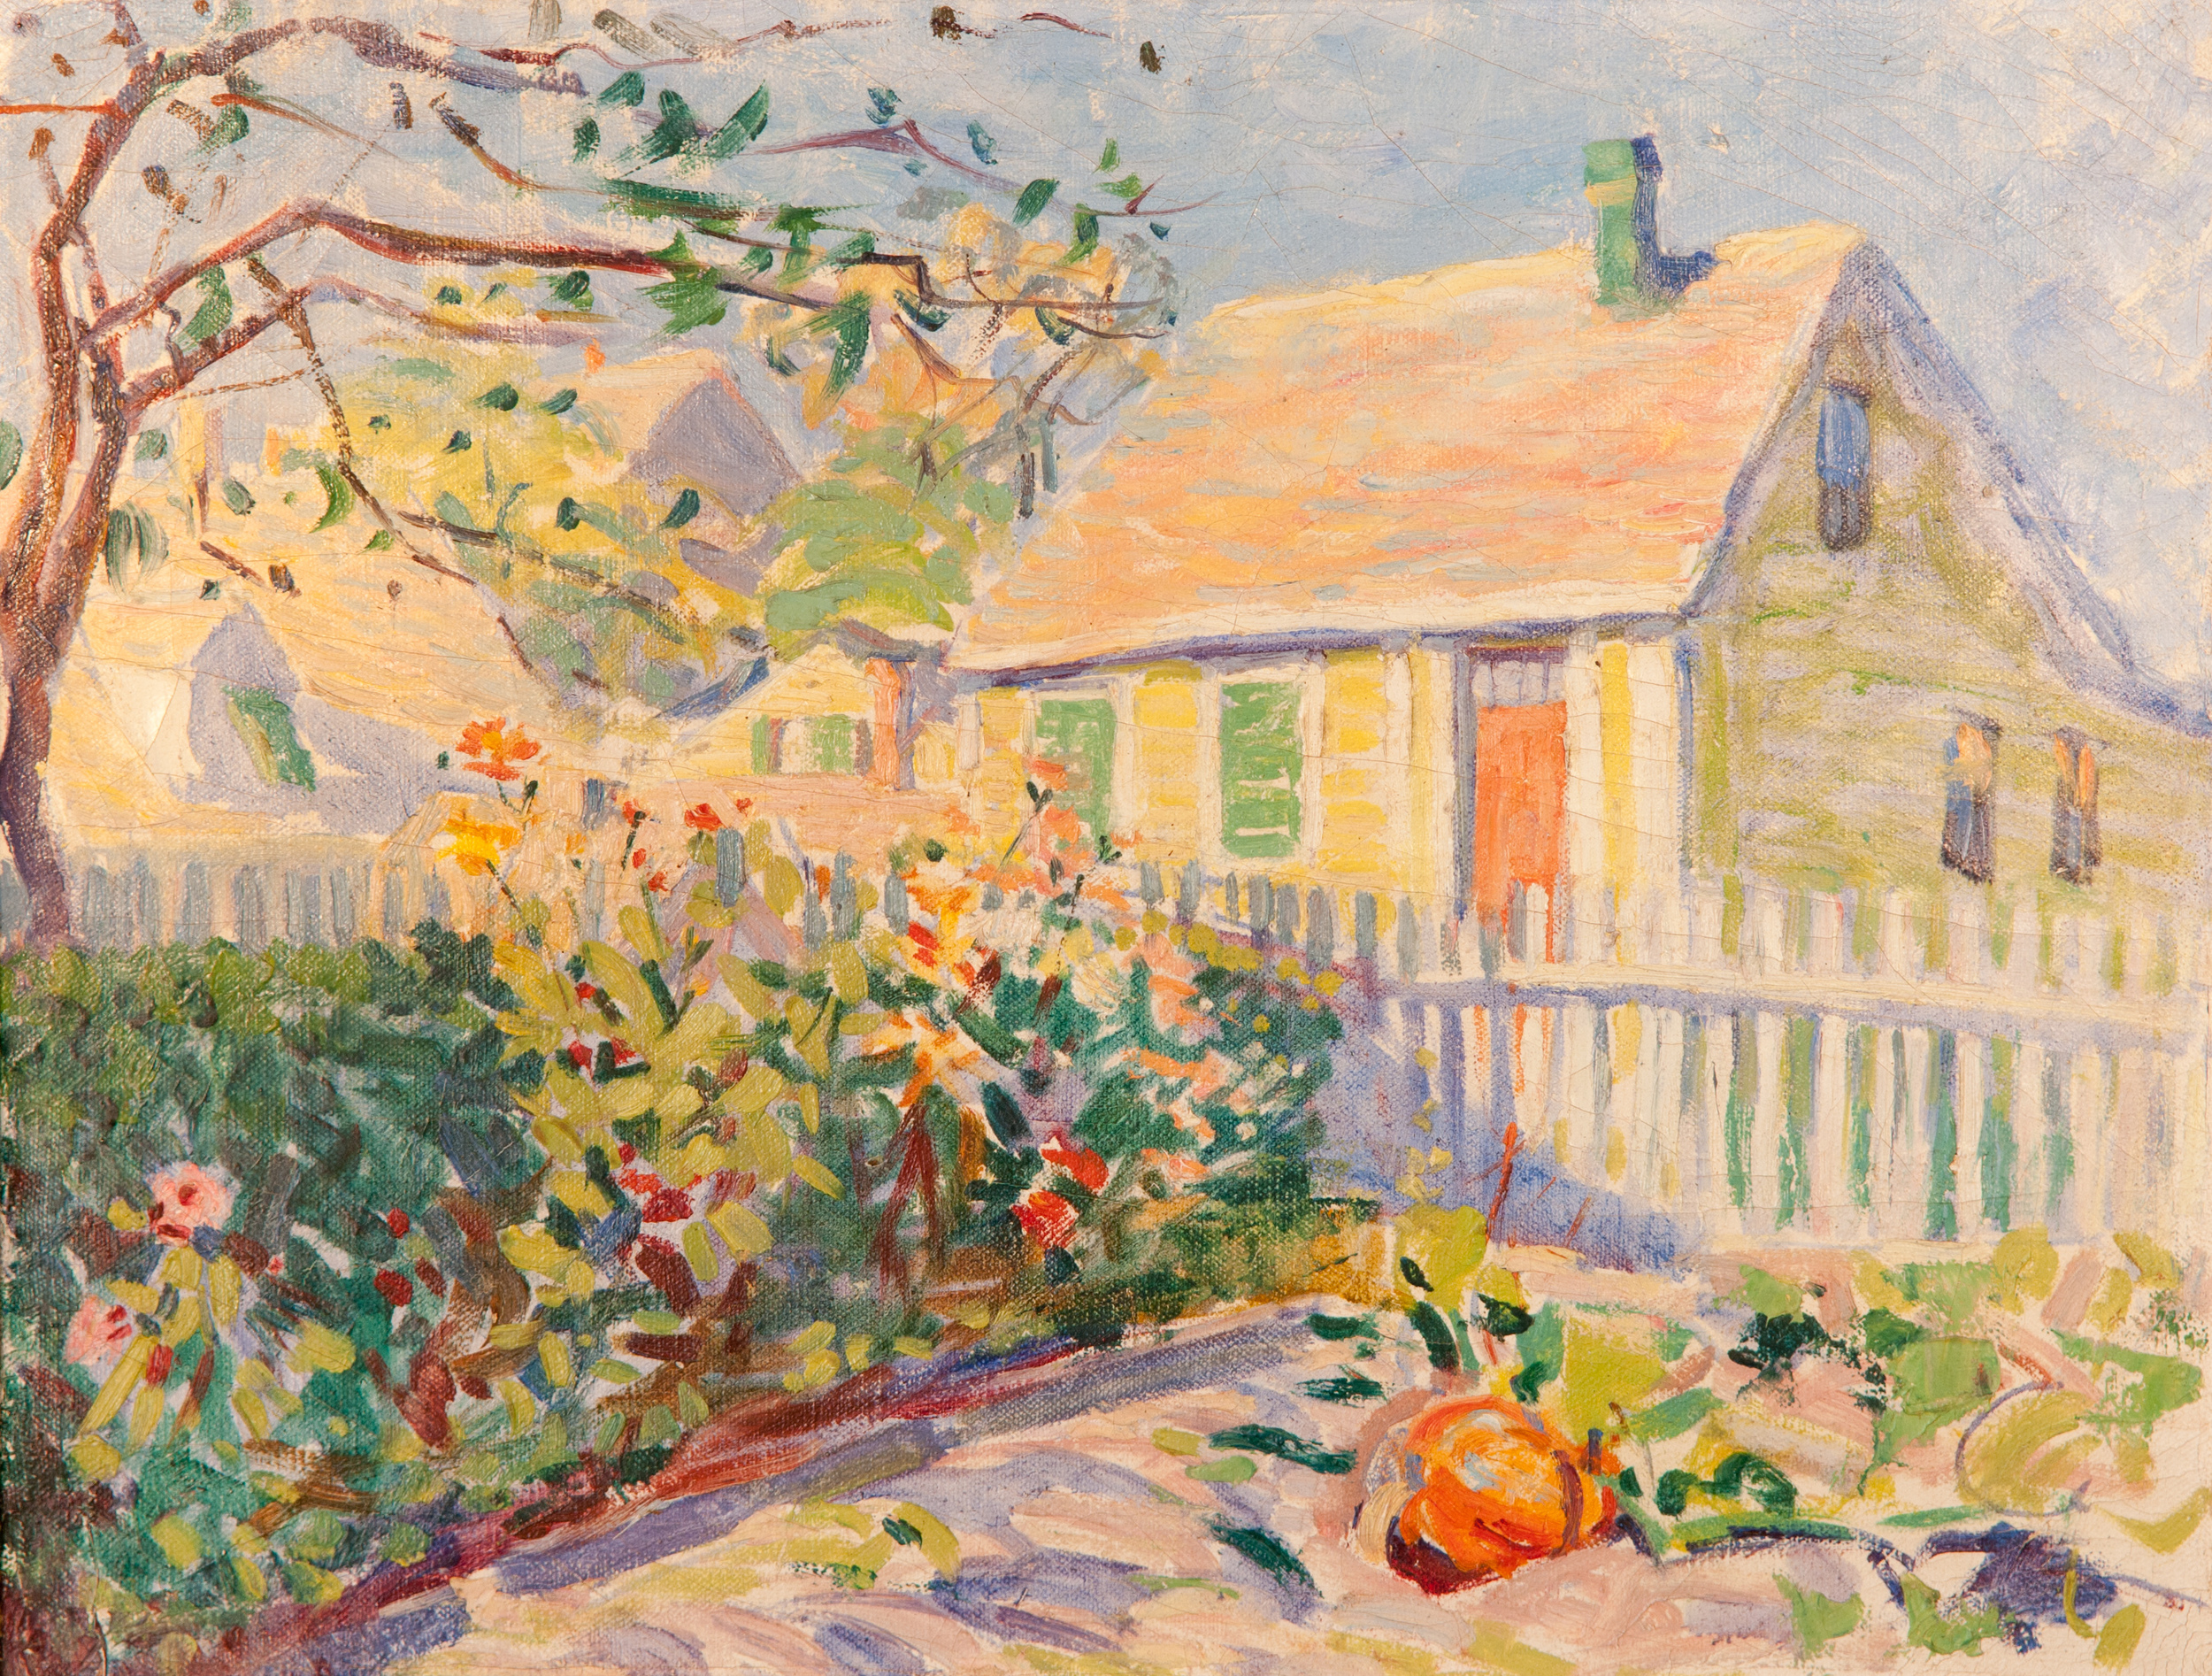 House with Pumpkin (Oil Painting) by Edith Lake Wilkinson